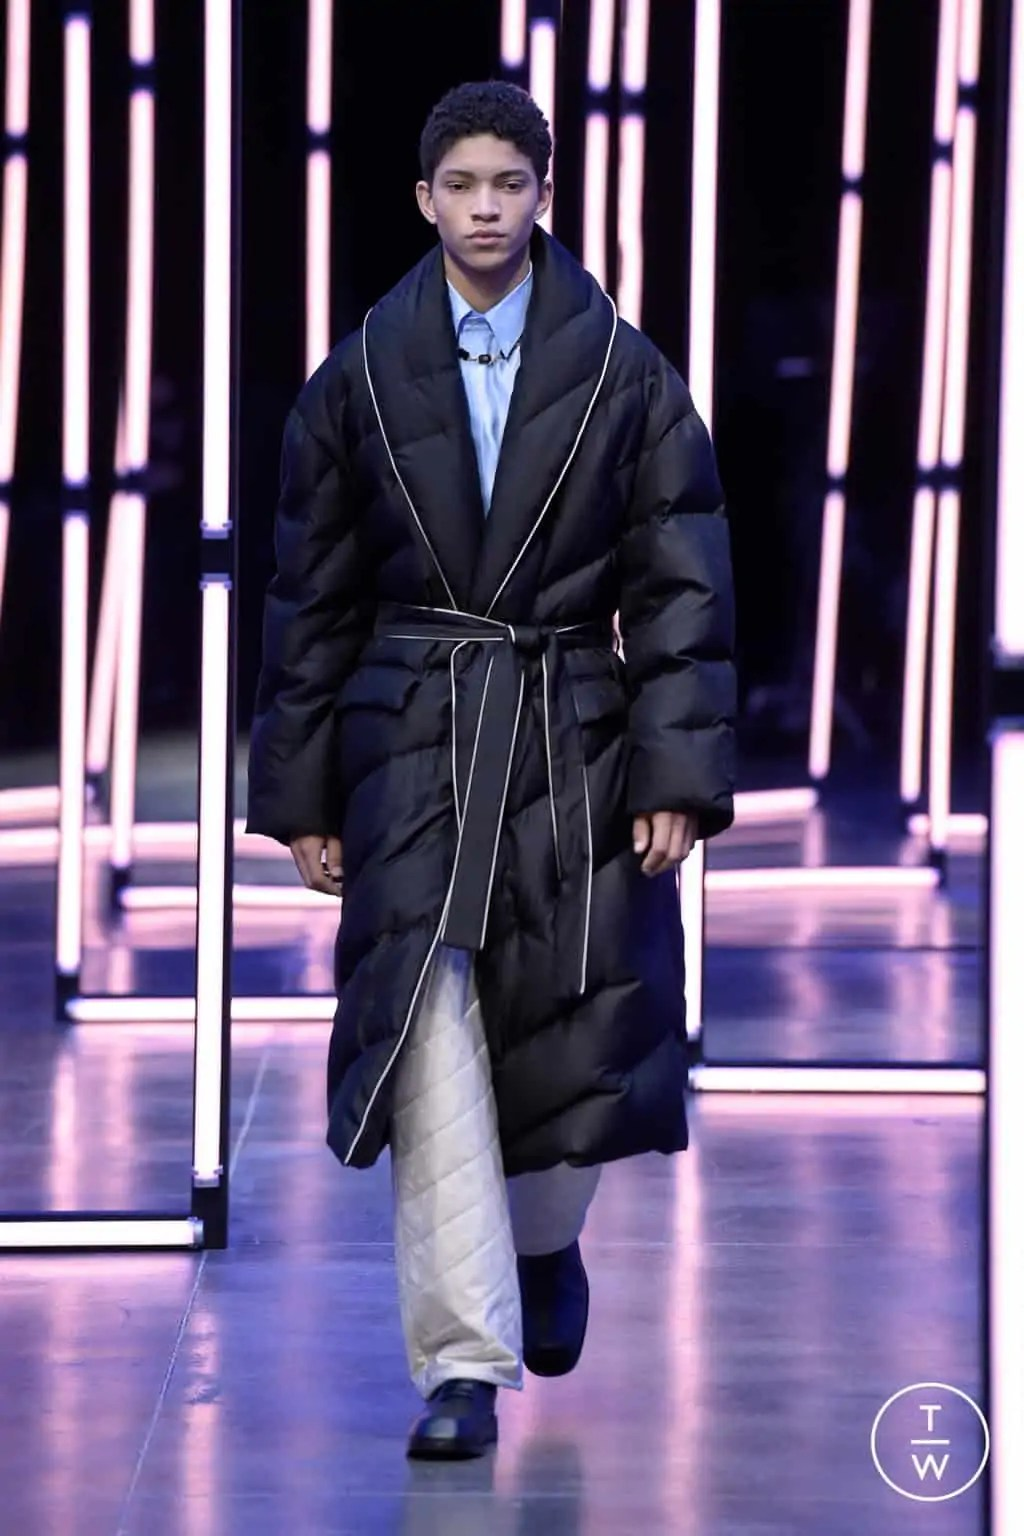 15 FALL/WINTER TRENDS FOR MEN IN 2021 483